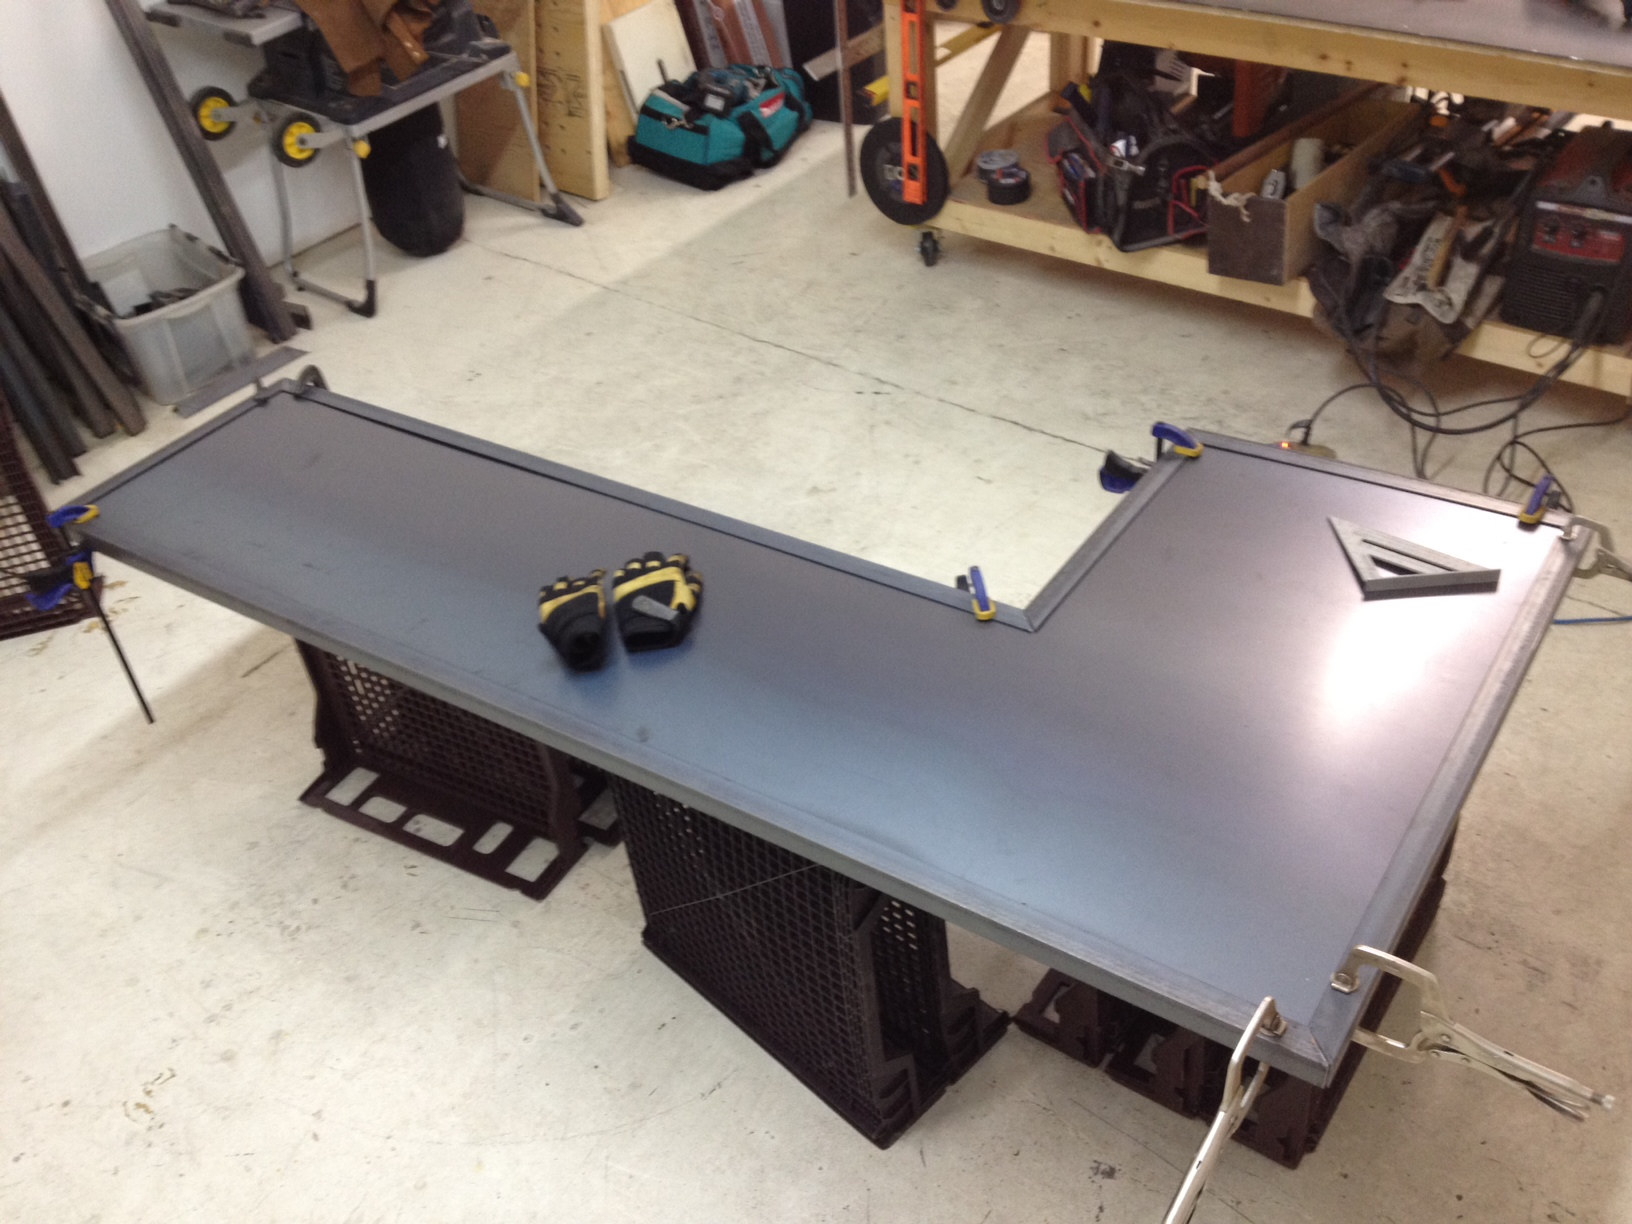 Shop Countertops : bar countertop for Bike Sauce. It?s a local volunteer run bike shop ...